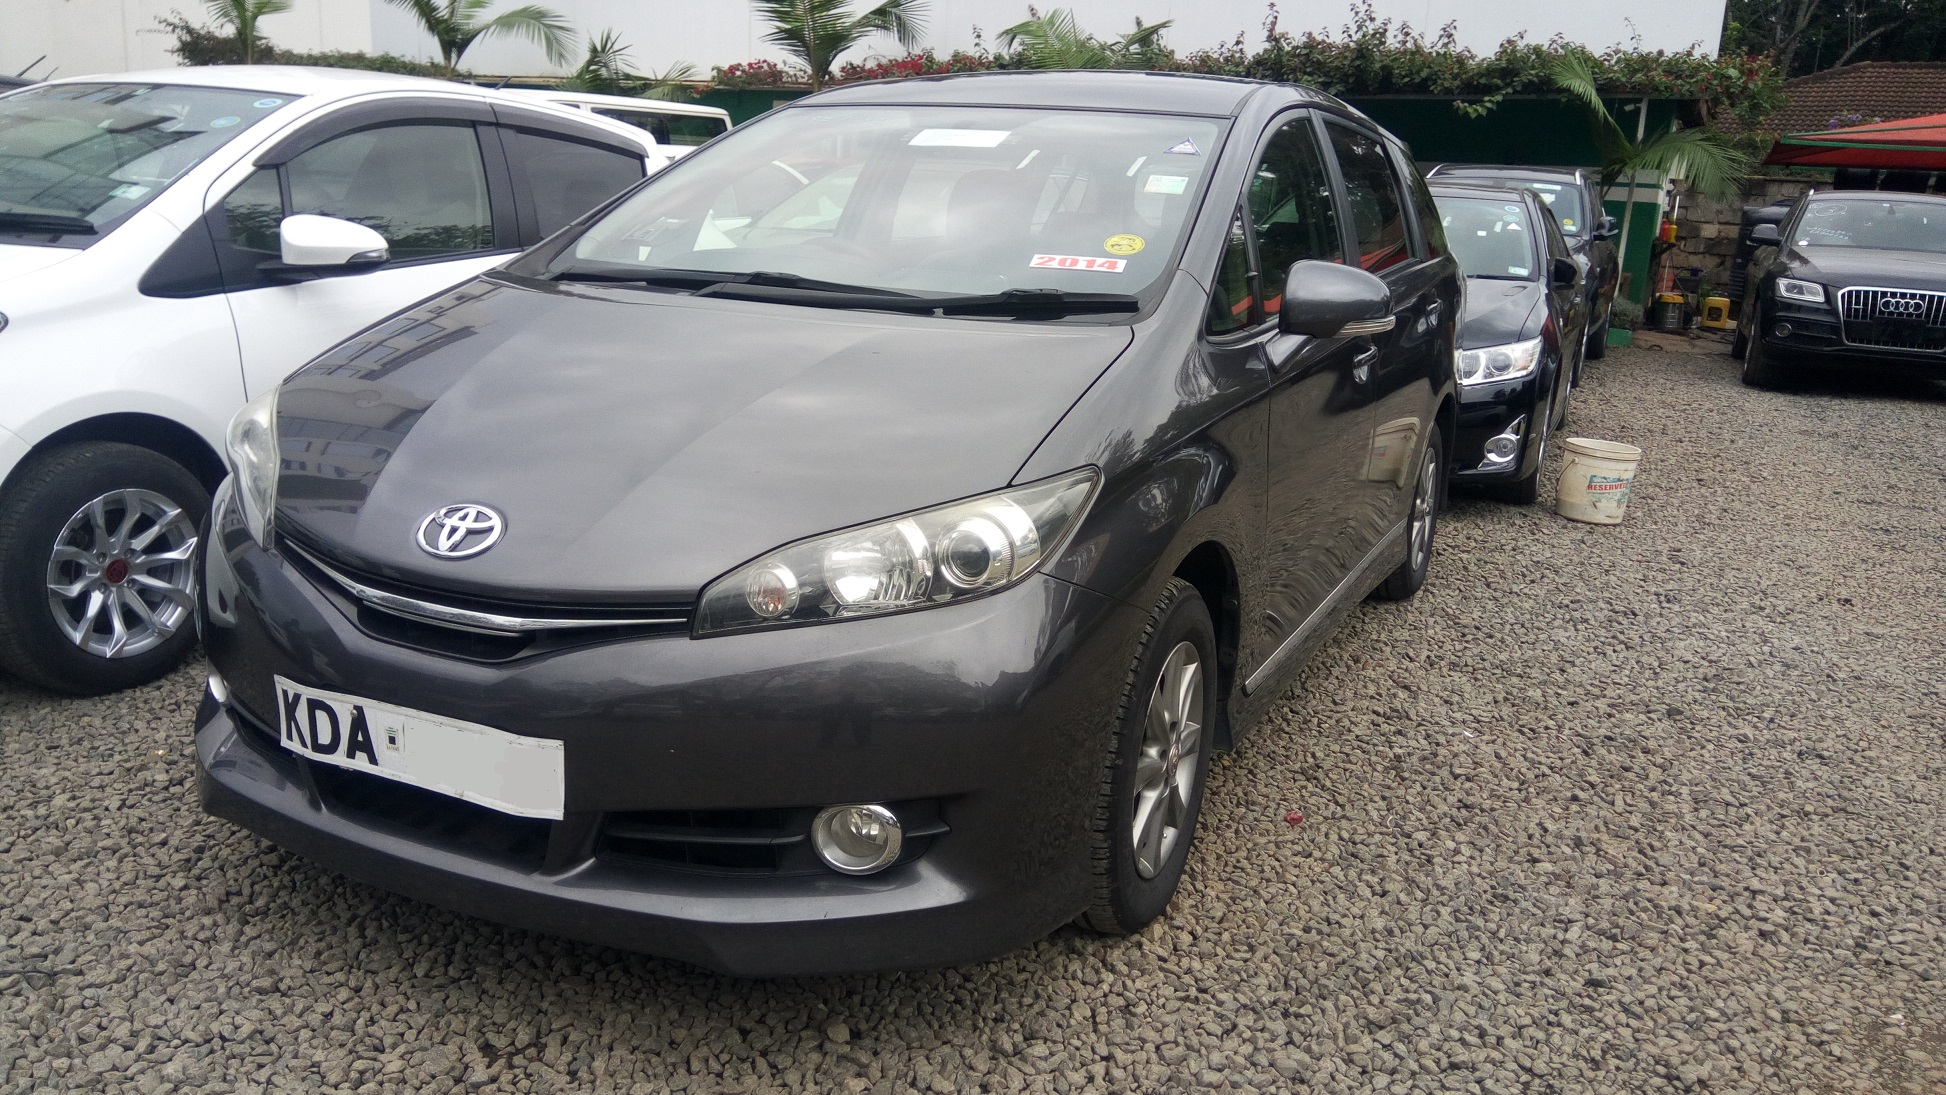 Toyota Wish 2014 for sale in lavington, Nairobi Kenya